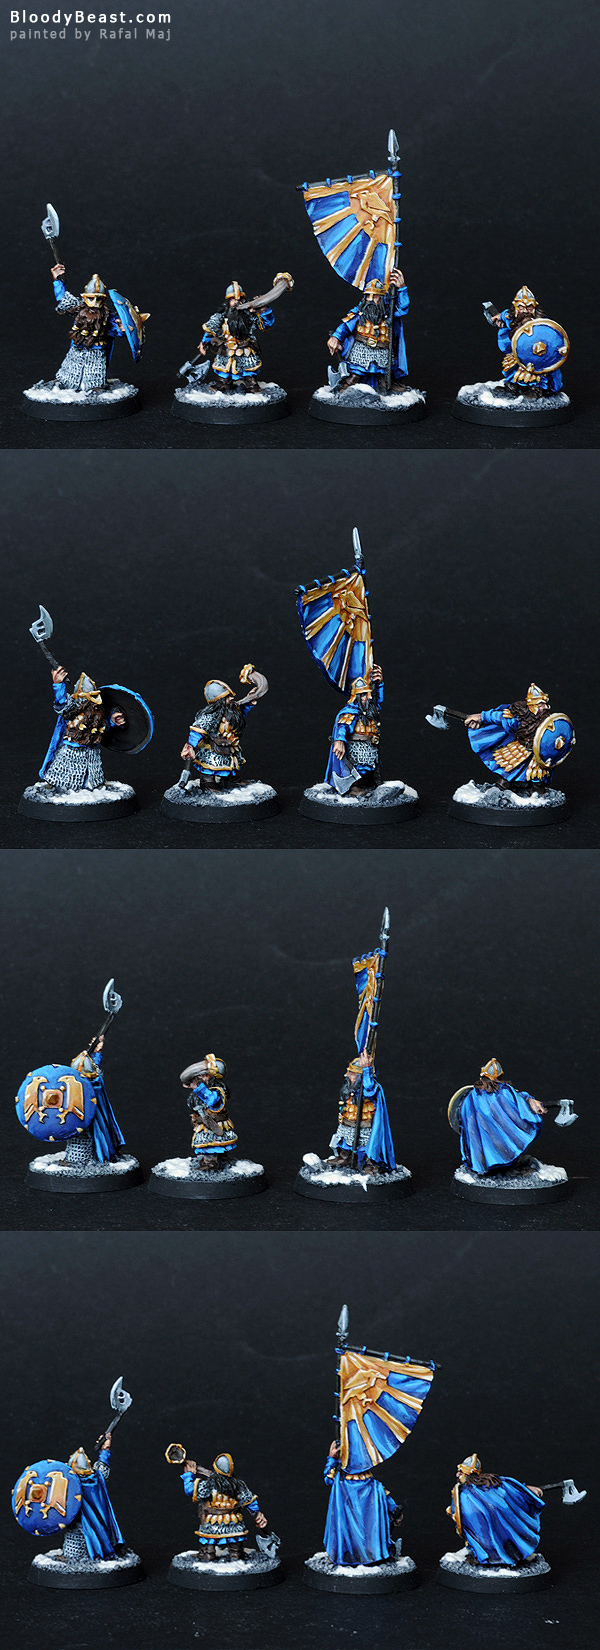 Dwarf Commanders painted by Rafal Maj (BloodyBeast.com)